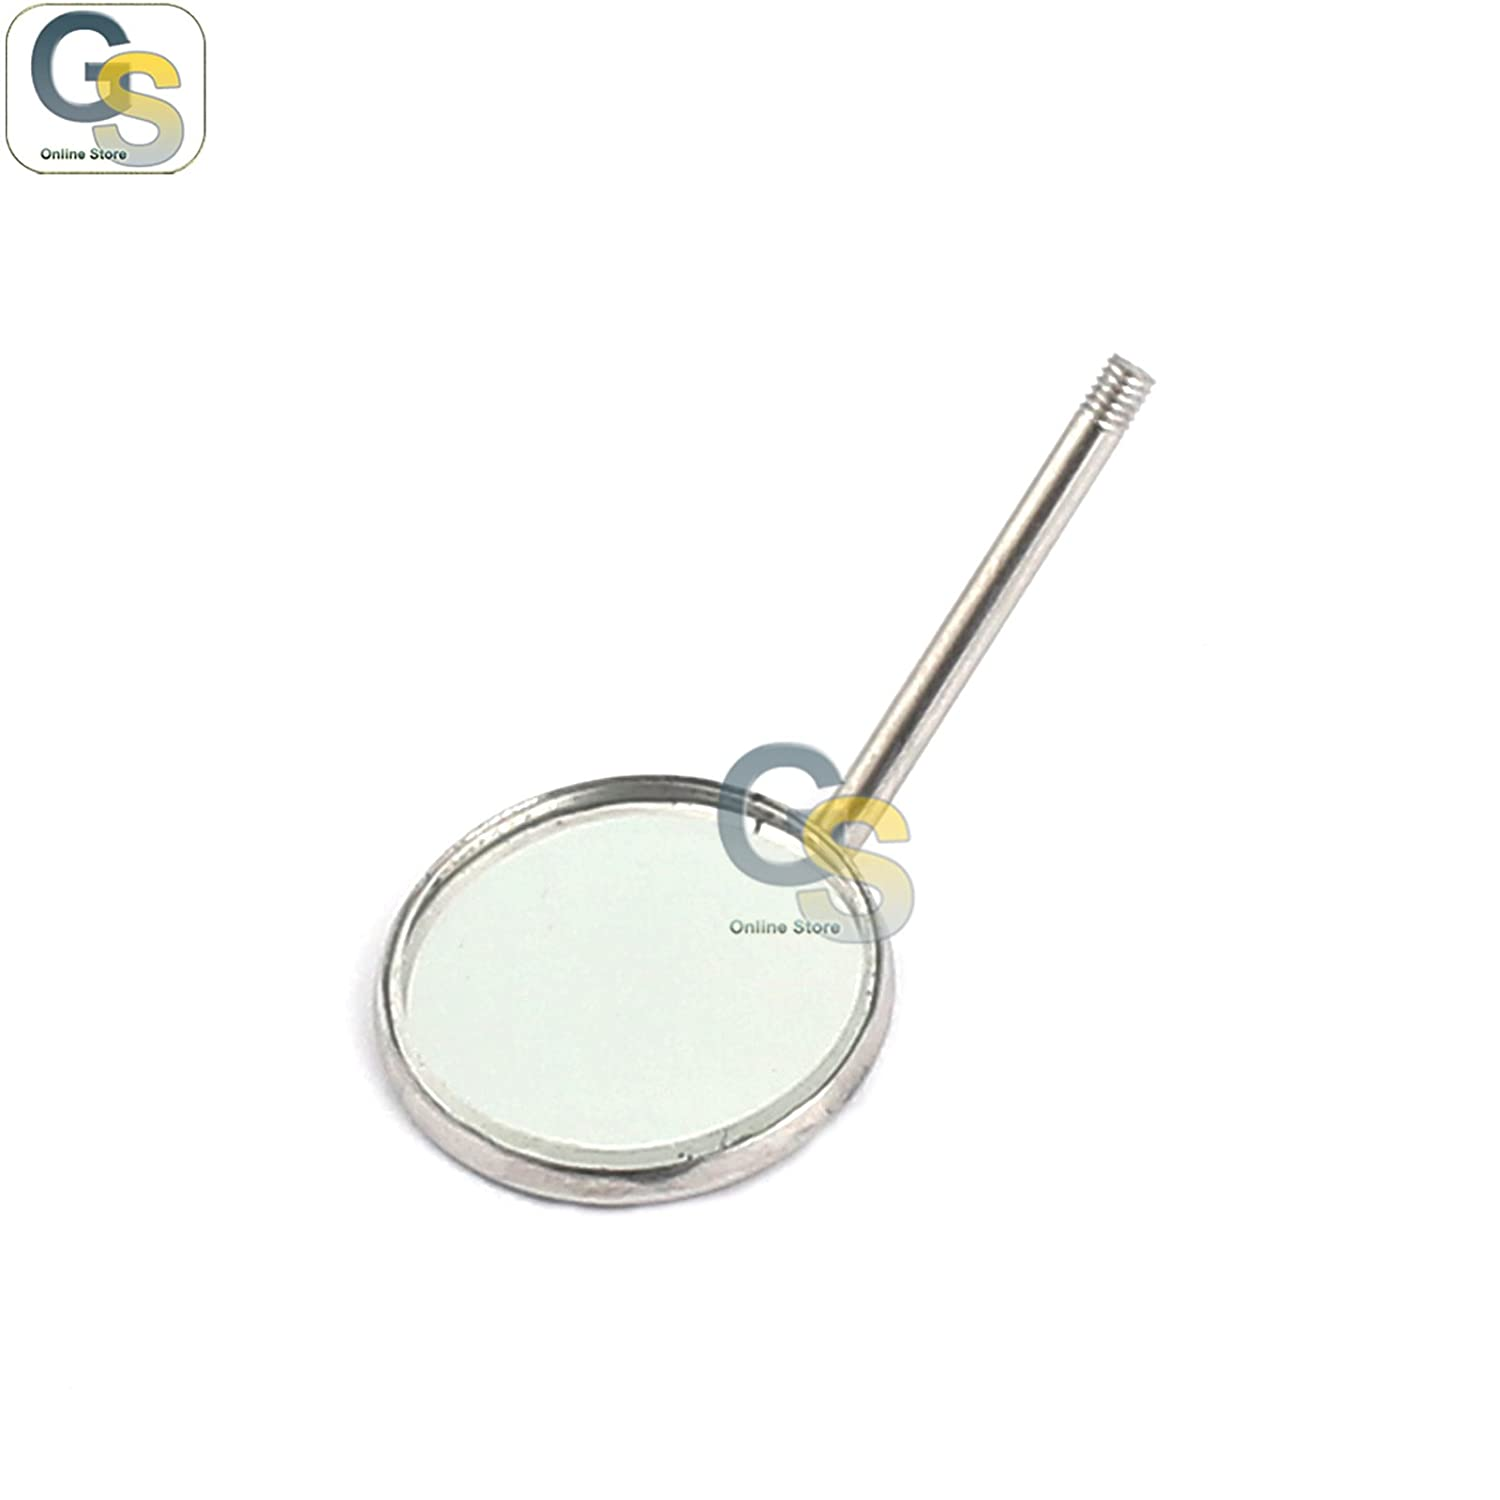 G.S Dental Mirrors #3 Minneapolis Mall Best Quality Don't miss the campaign